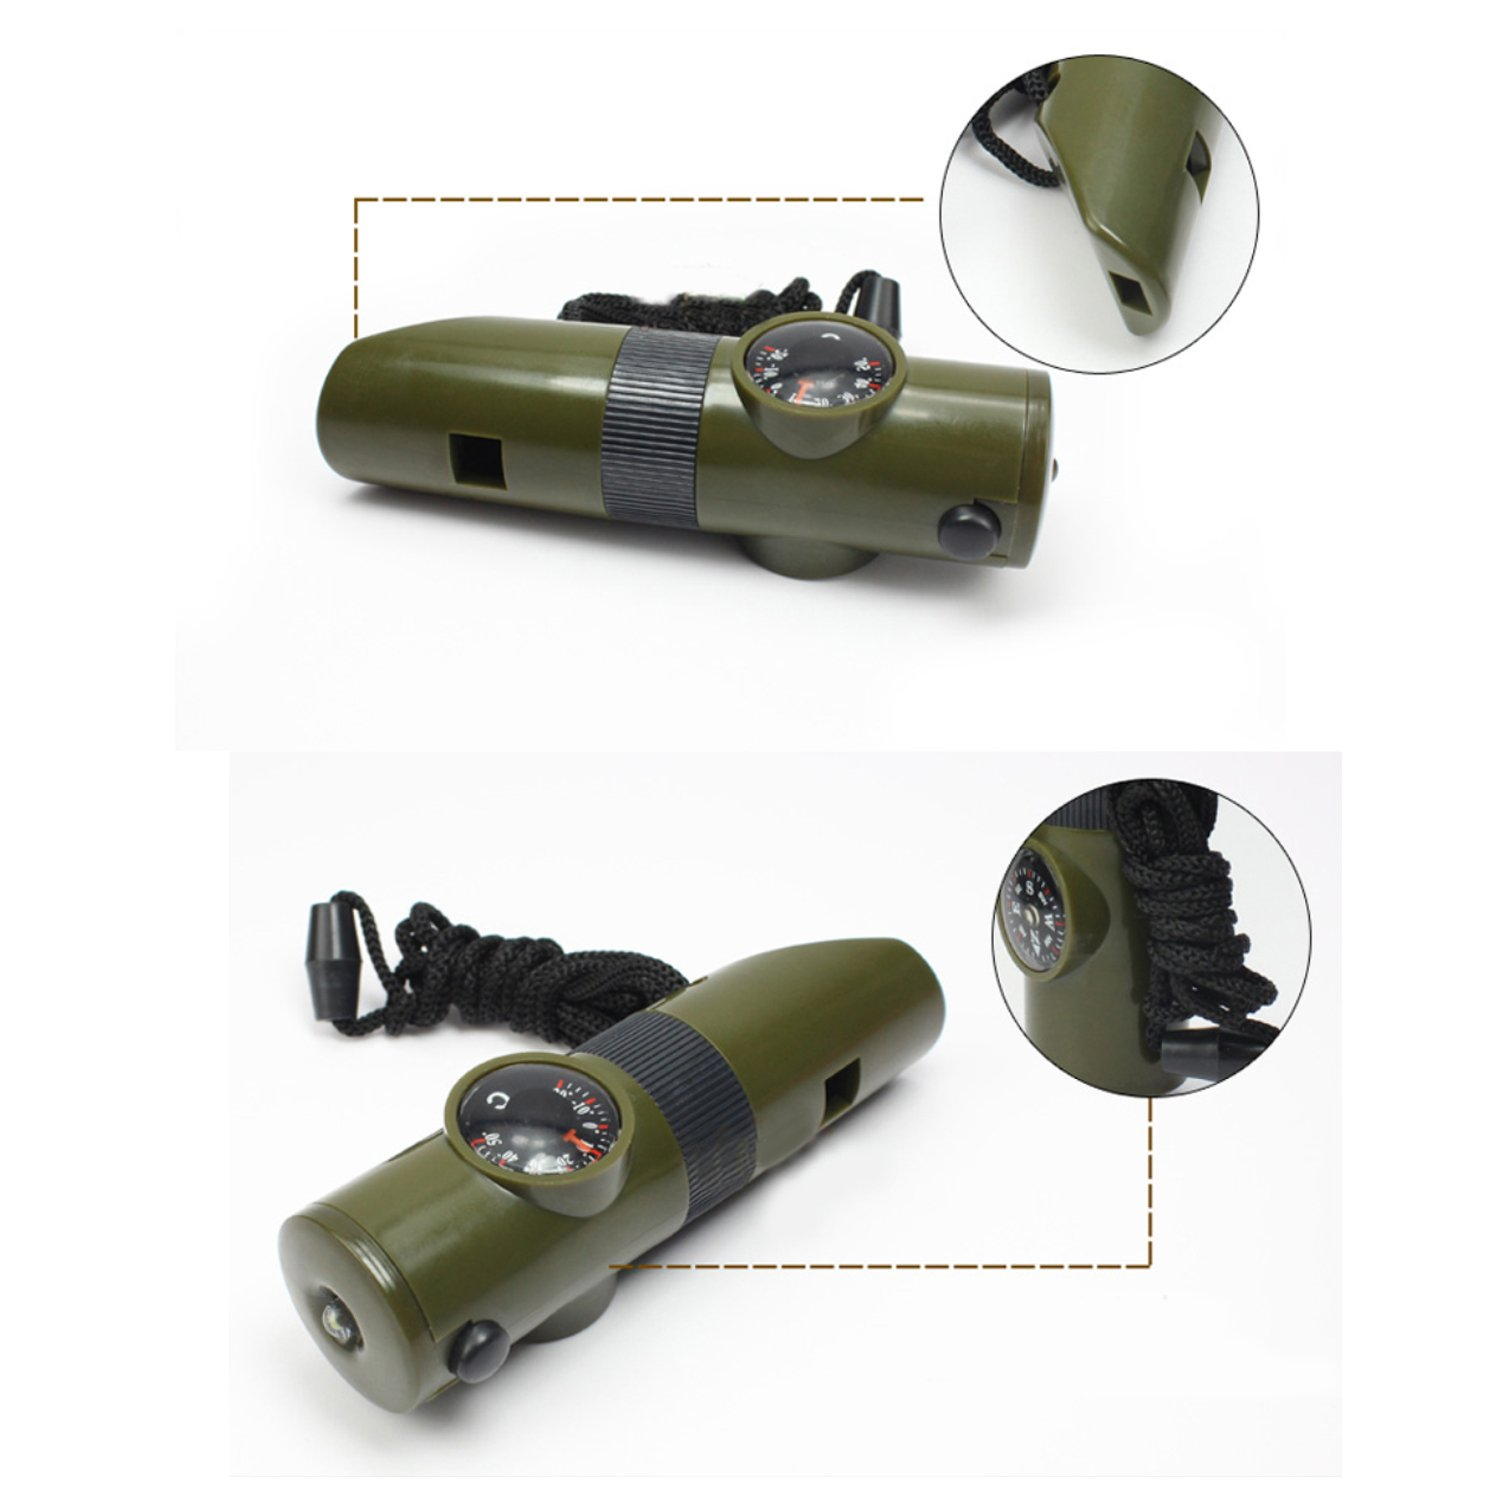 TRENDBOX Multifunctional 7 in 1 Camping Hiking Outdoor Whistle Compass Magnifier LED Flashlight Thermometer Emergency Survival Traveling